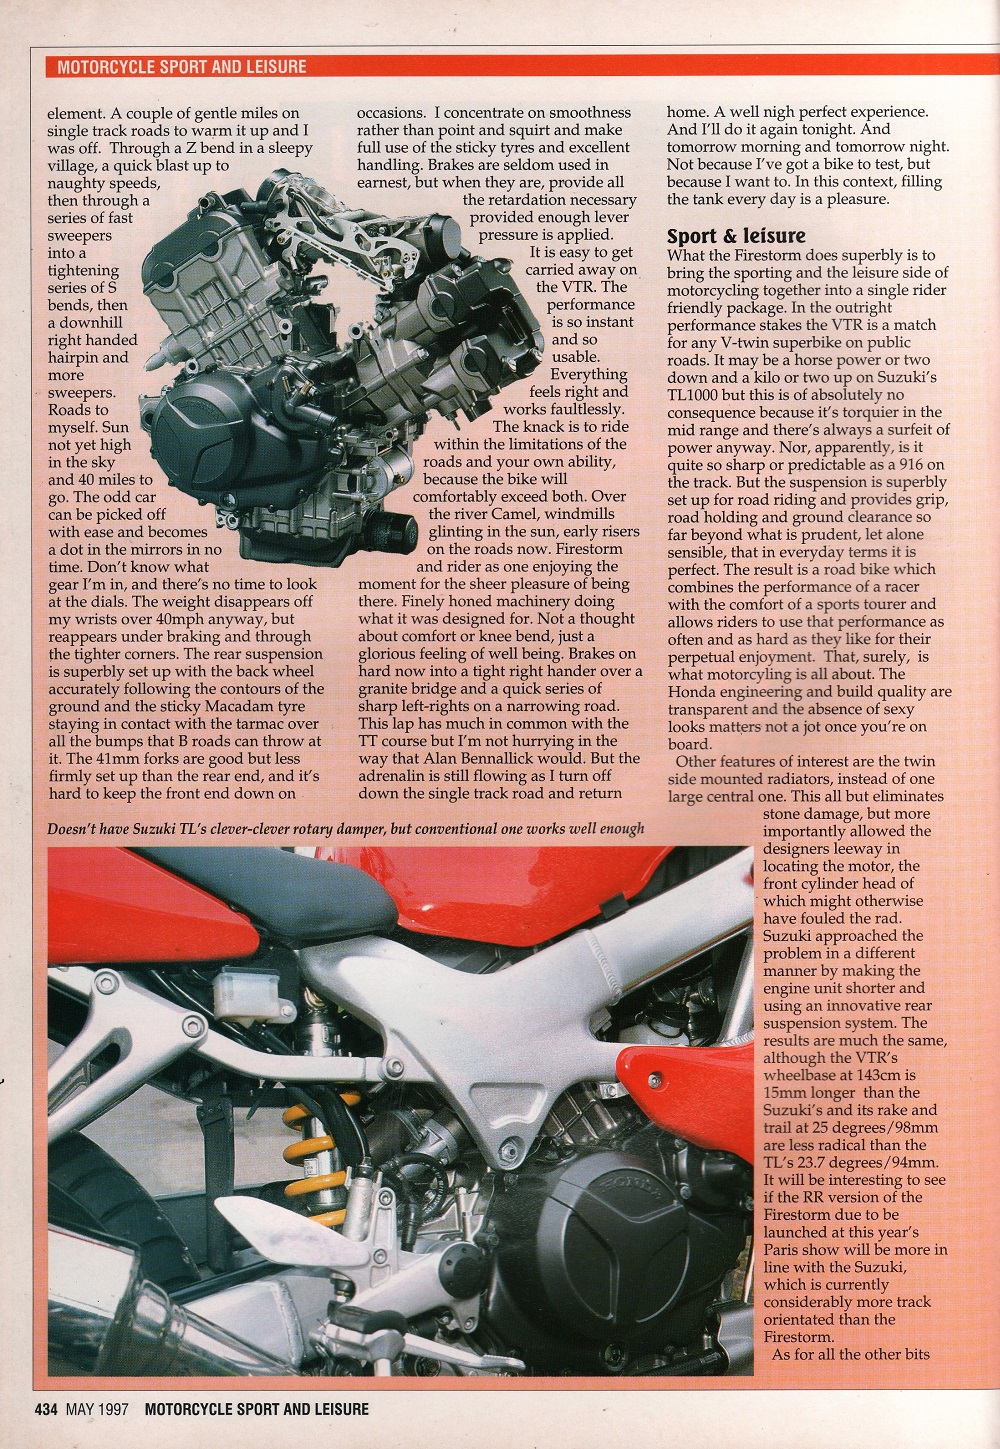 1997 Honda Firestorm road test.4.jpg